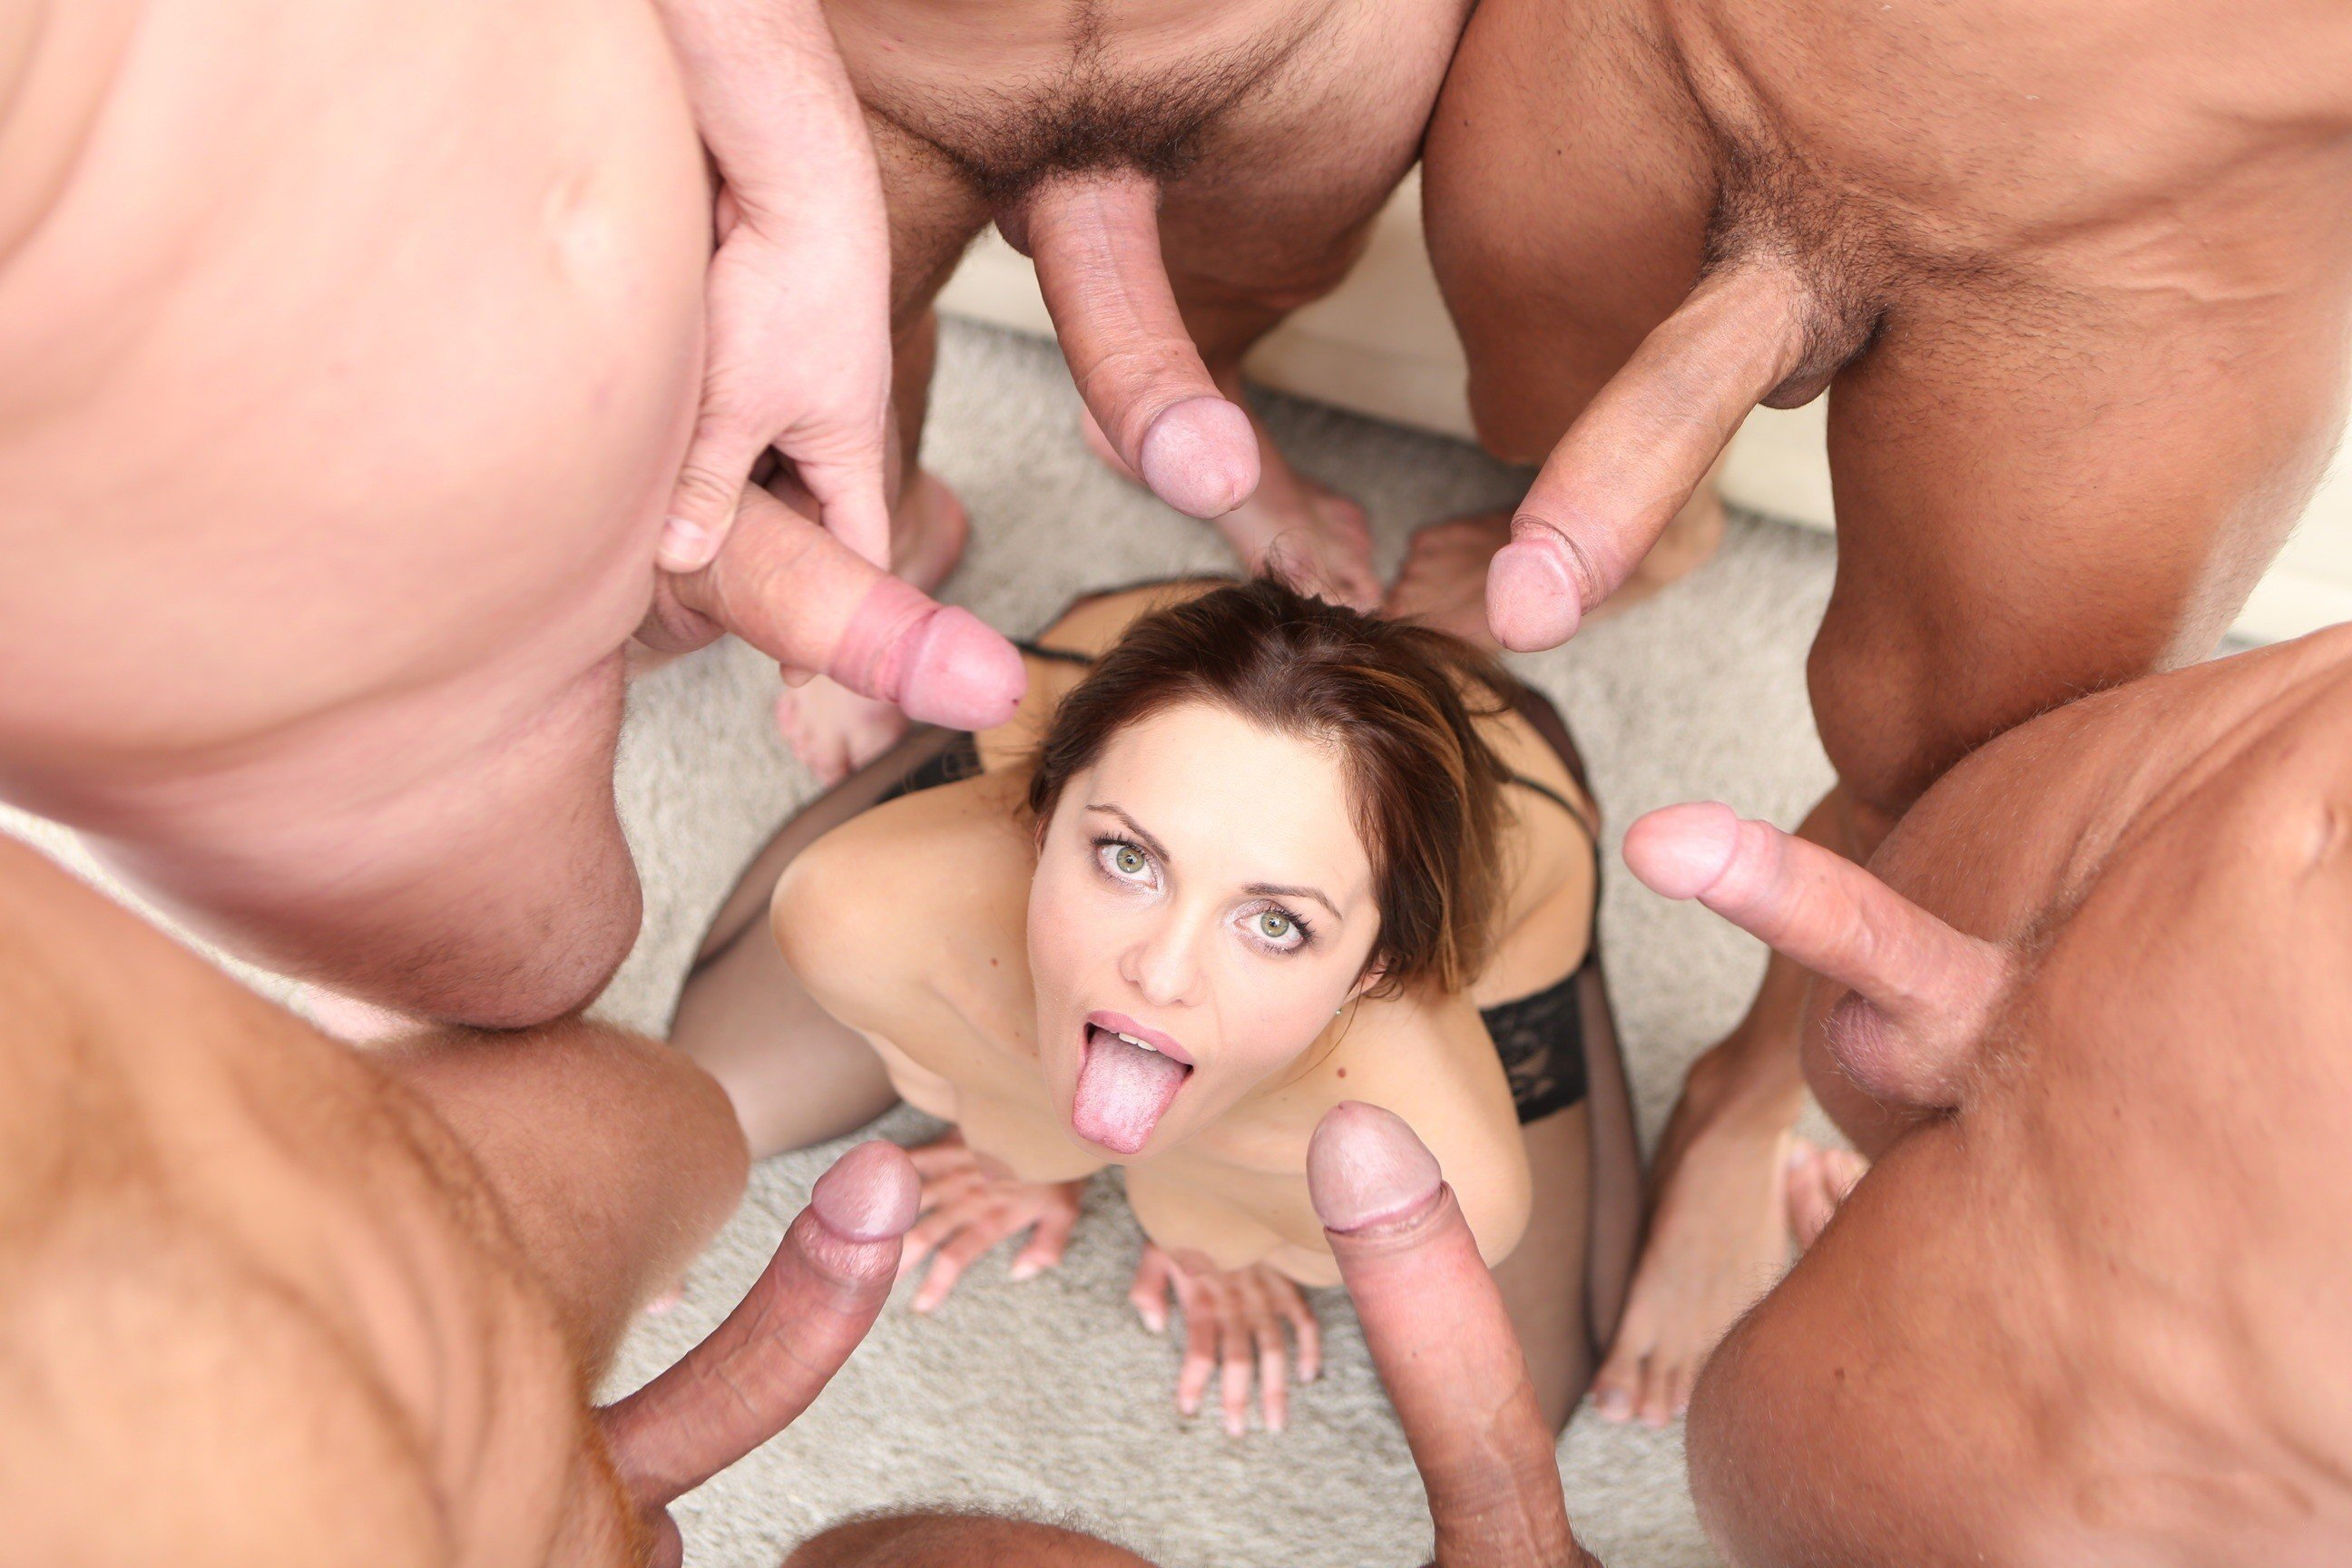 big-breasts-hardcore-bukkake-gangbang-videos-naked